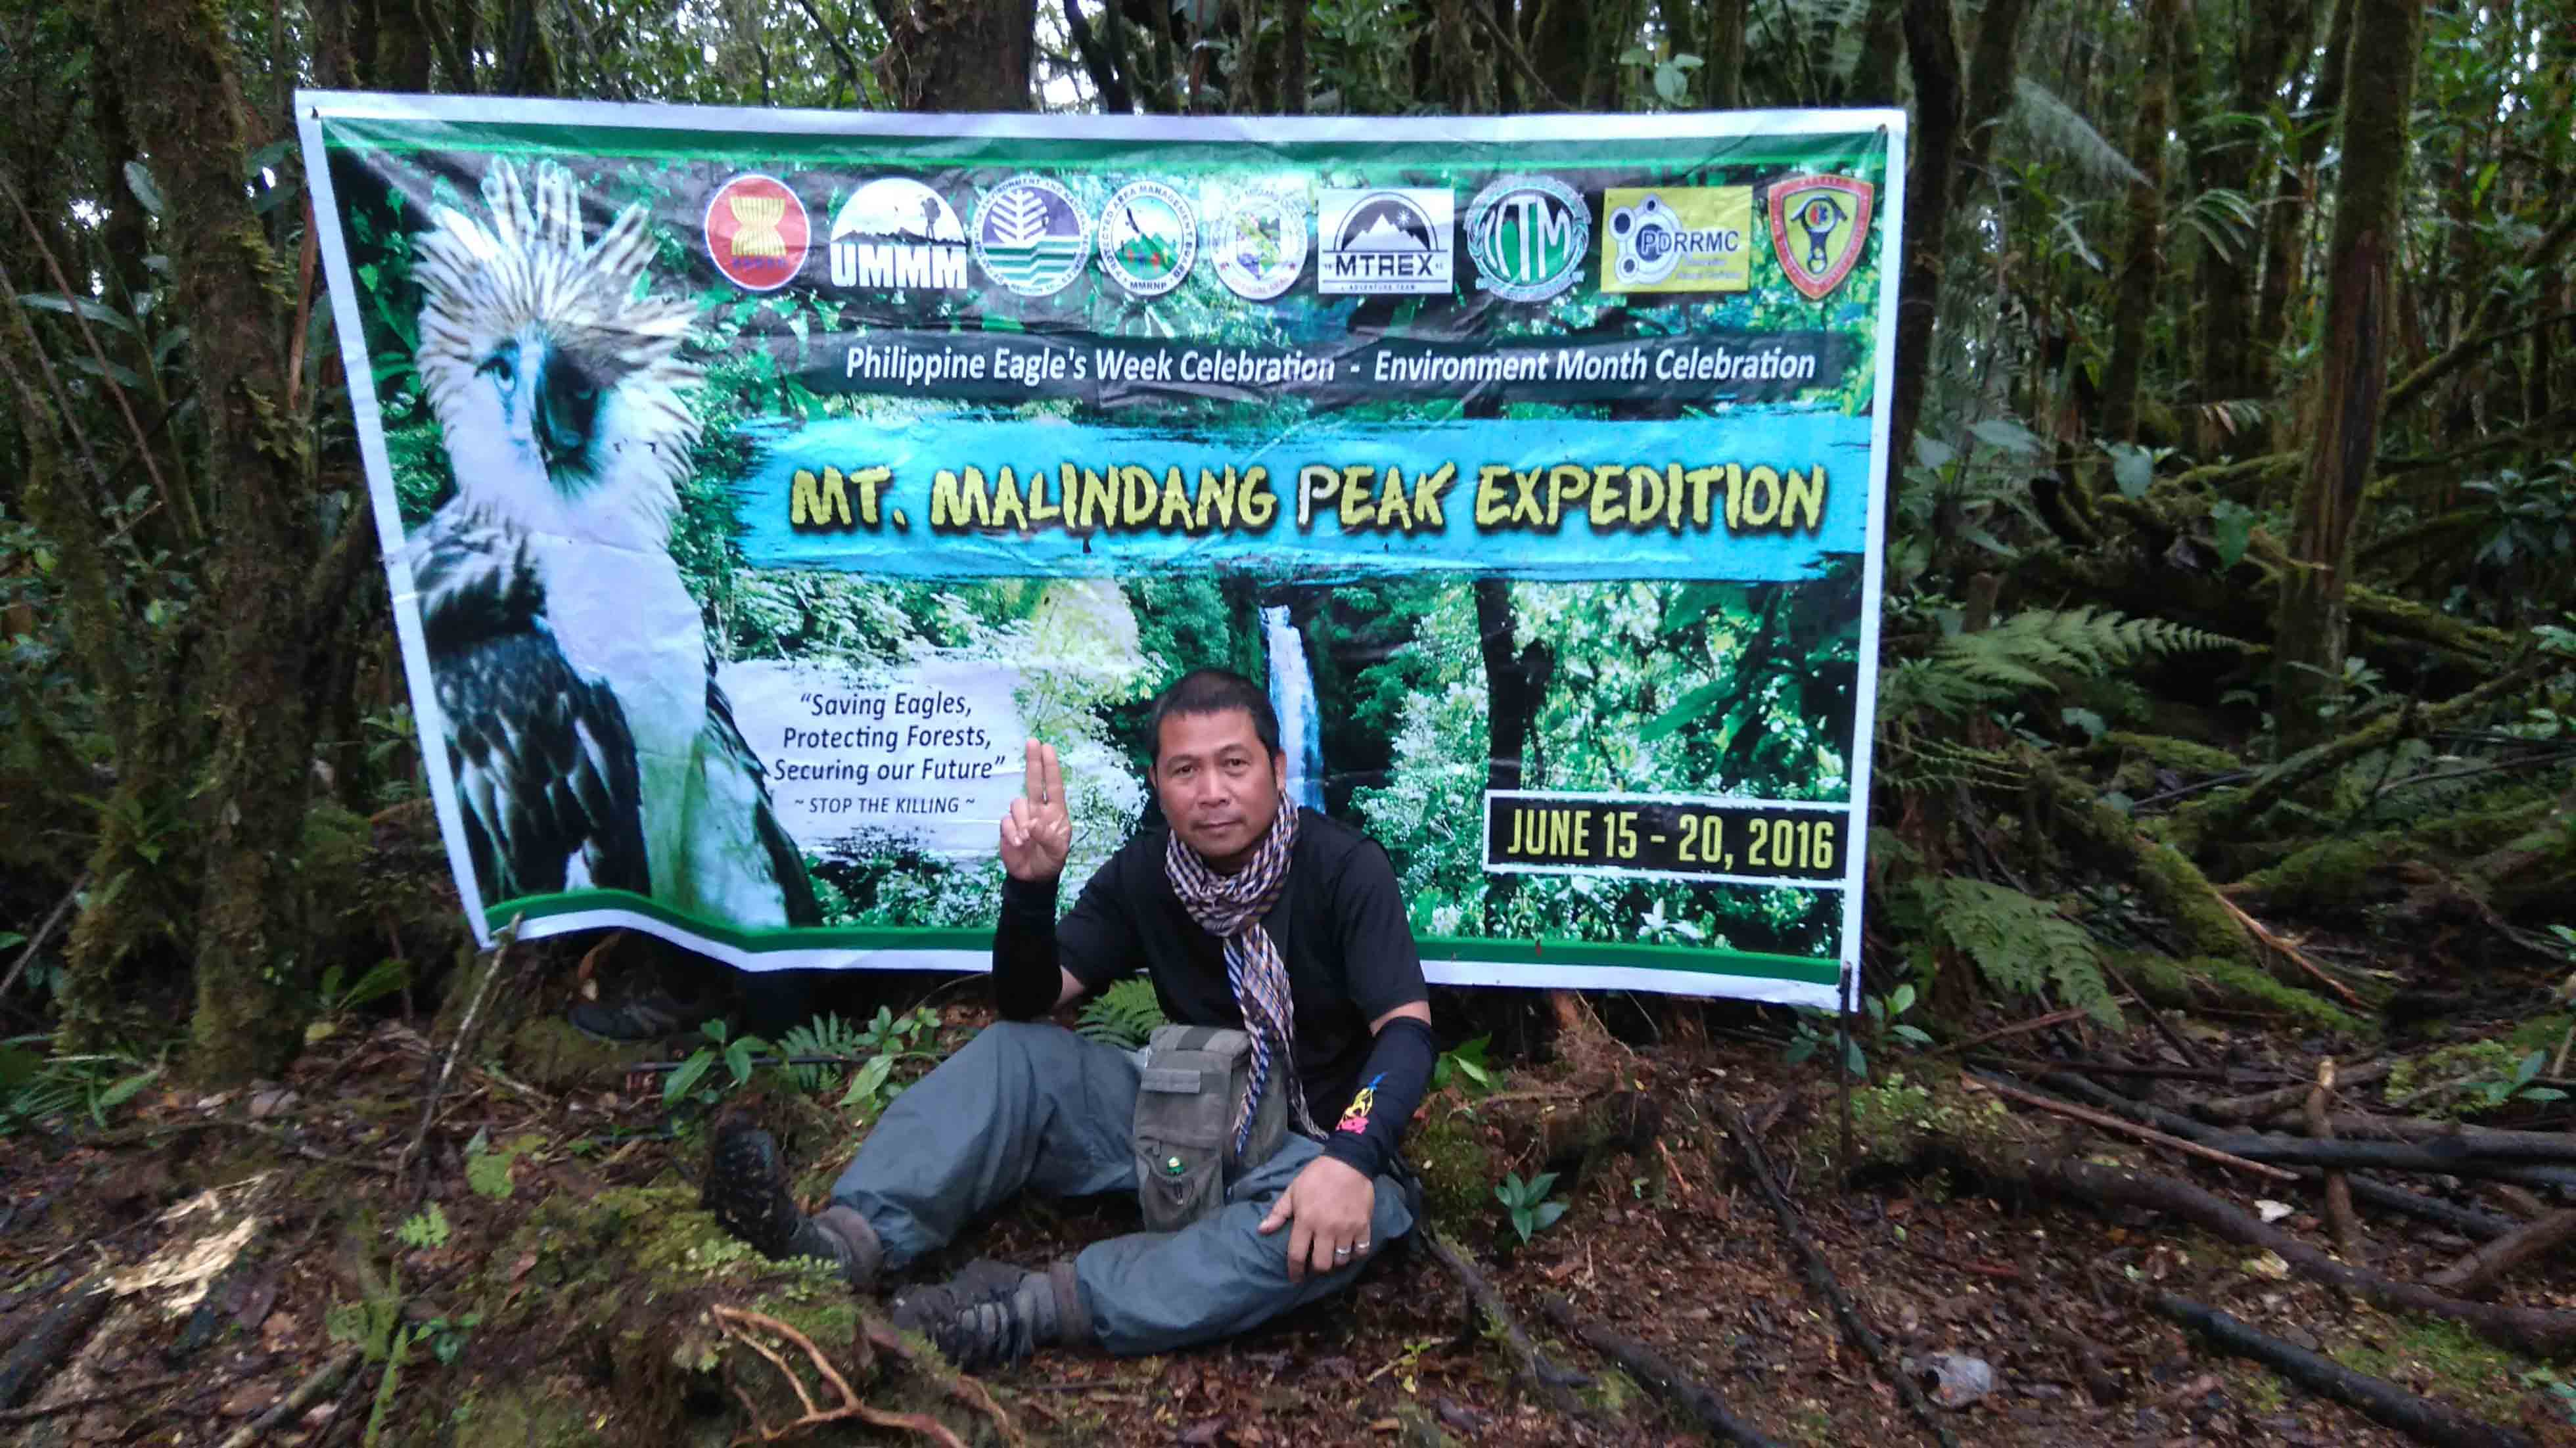 thephotos/2016/malindang peak expedition/DSC_1804.jpg